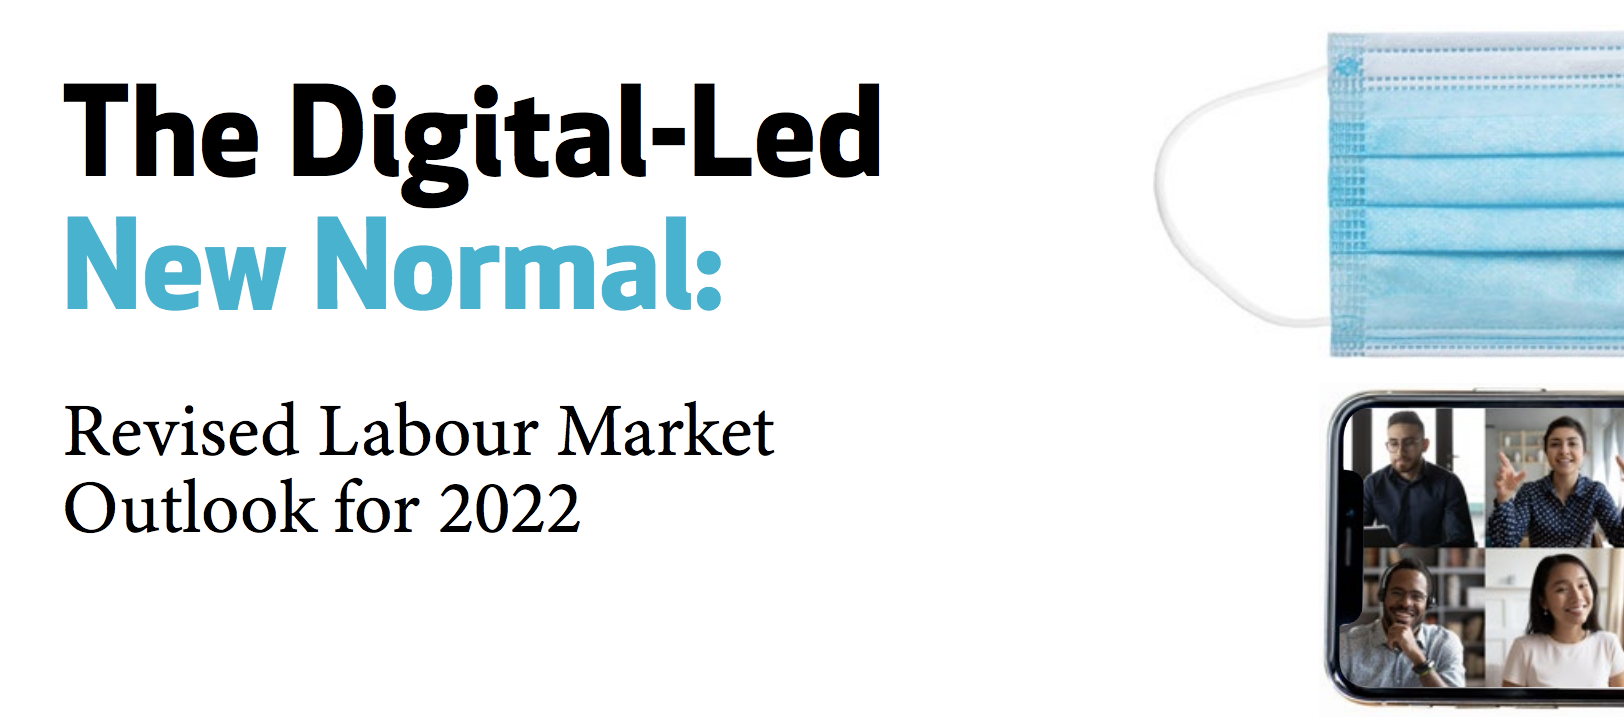 Despite COVID-19, the Canadian Digital Economy Remains Resilient: Revised Labour Market Outlook for 2022